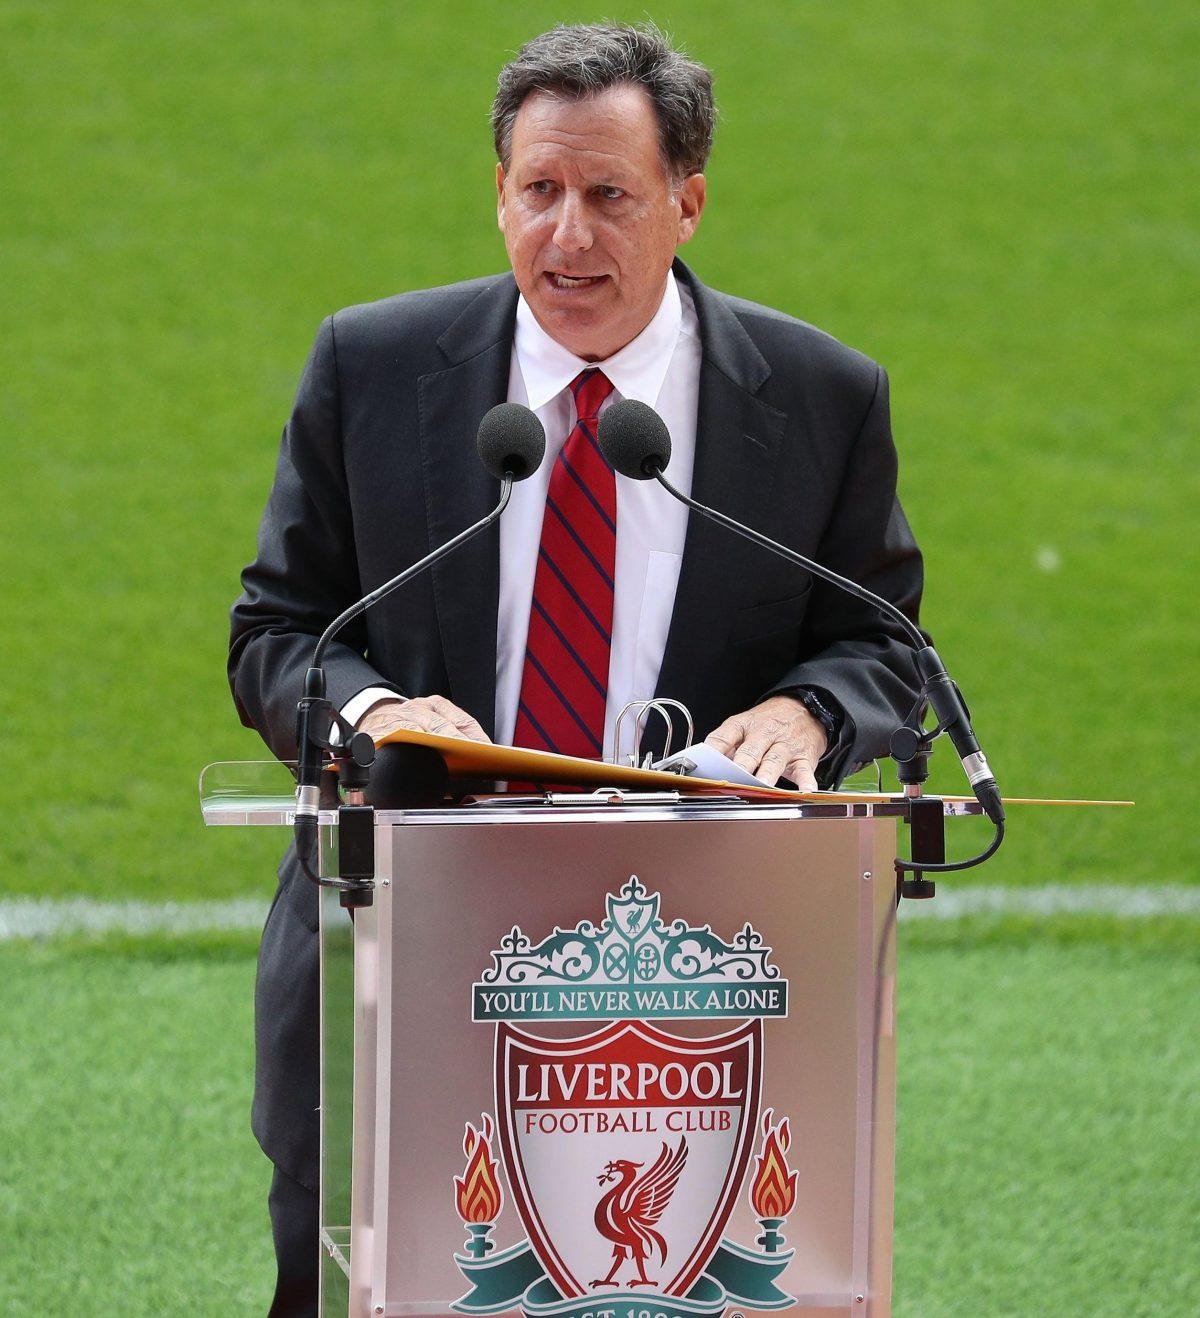 Liverpool Are Only Going To Get Stronger – Reds Chairman Werner